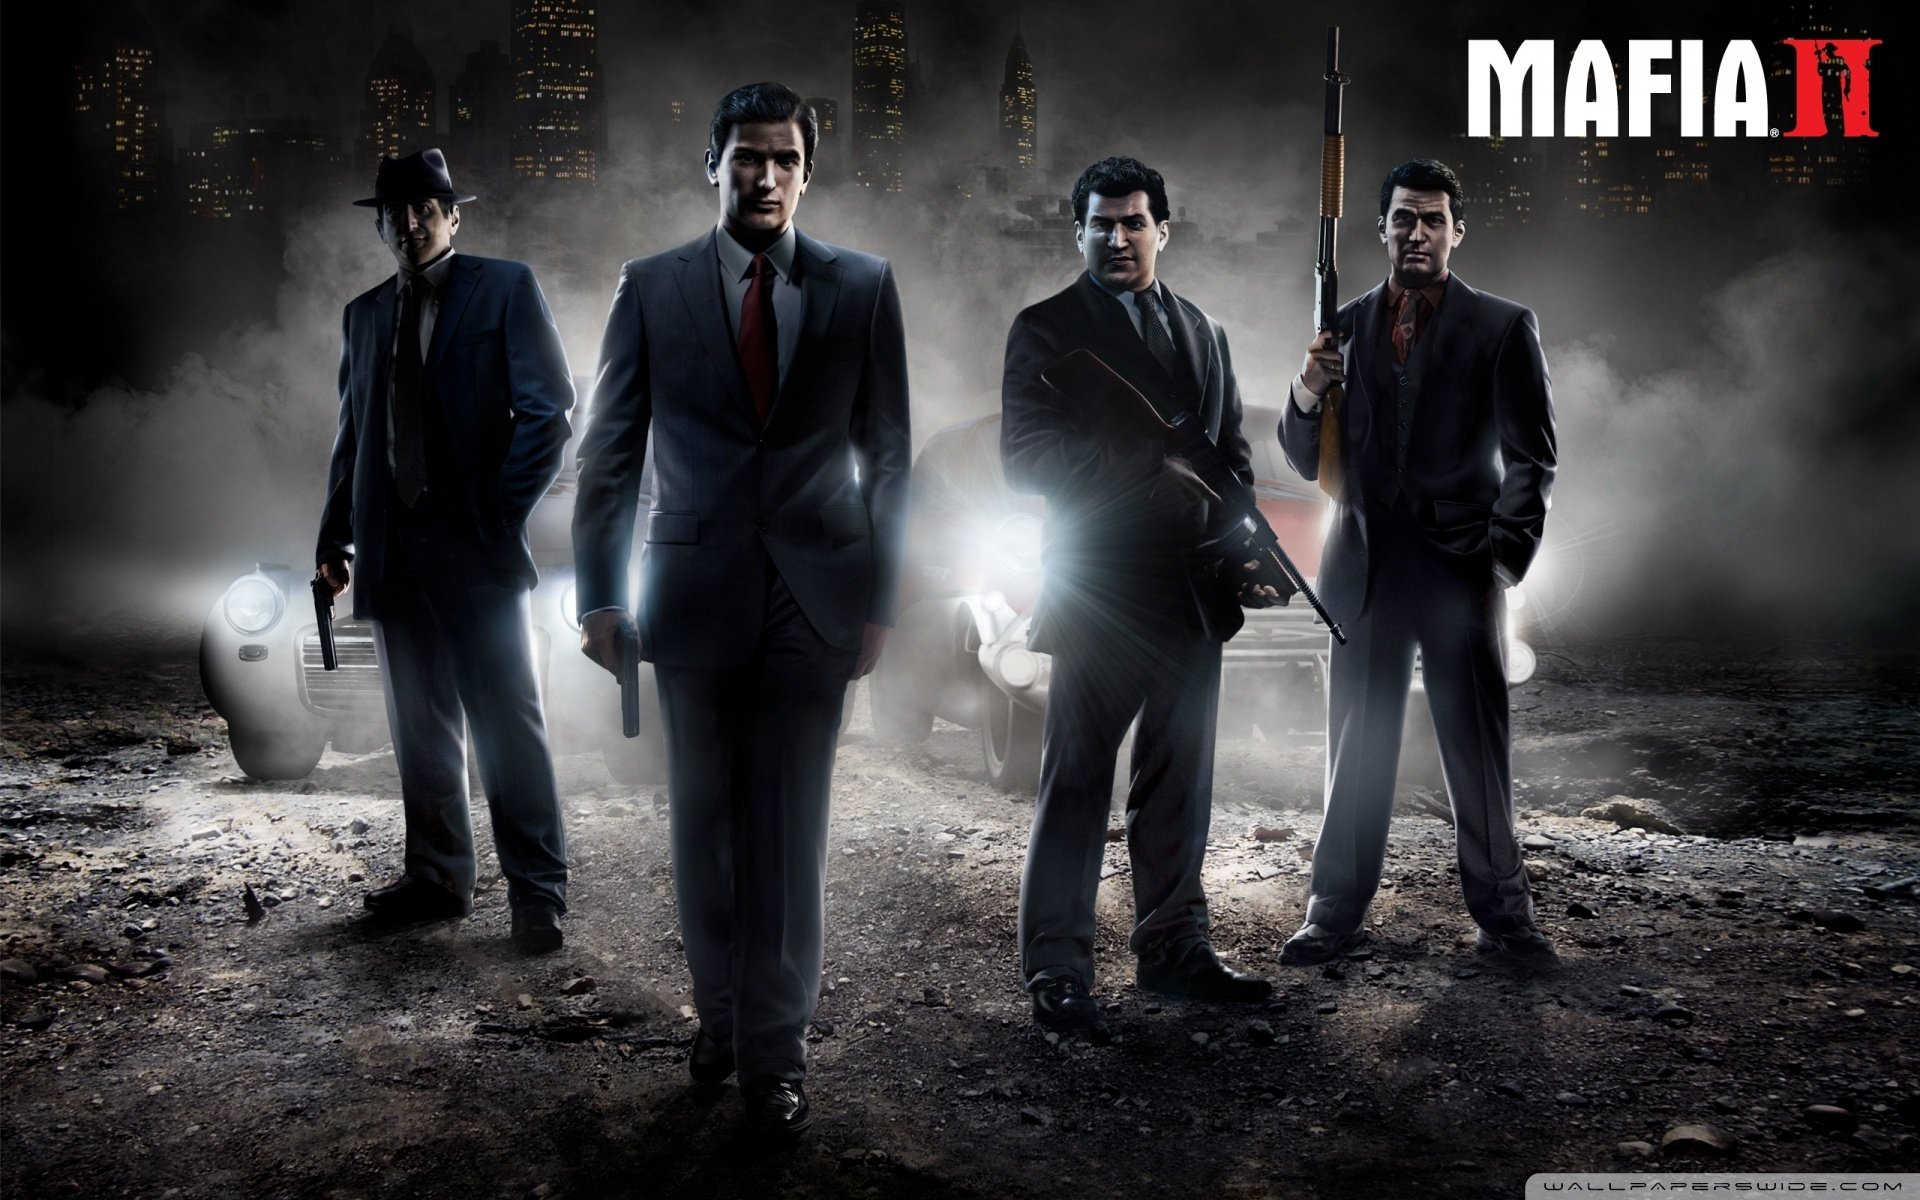 18 Mafia Ii Hd Wallpapers Background Images Wallpaper Abyss